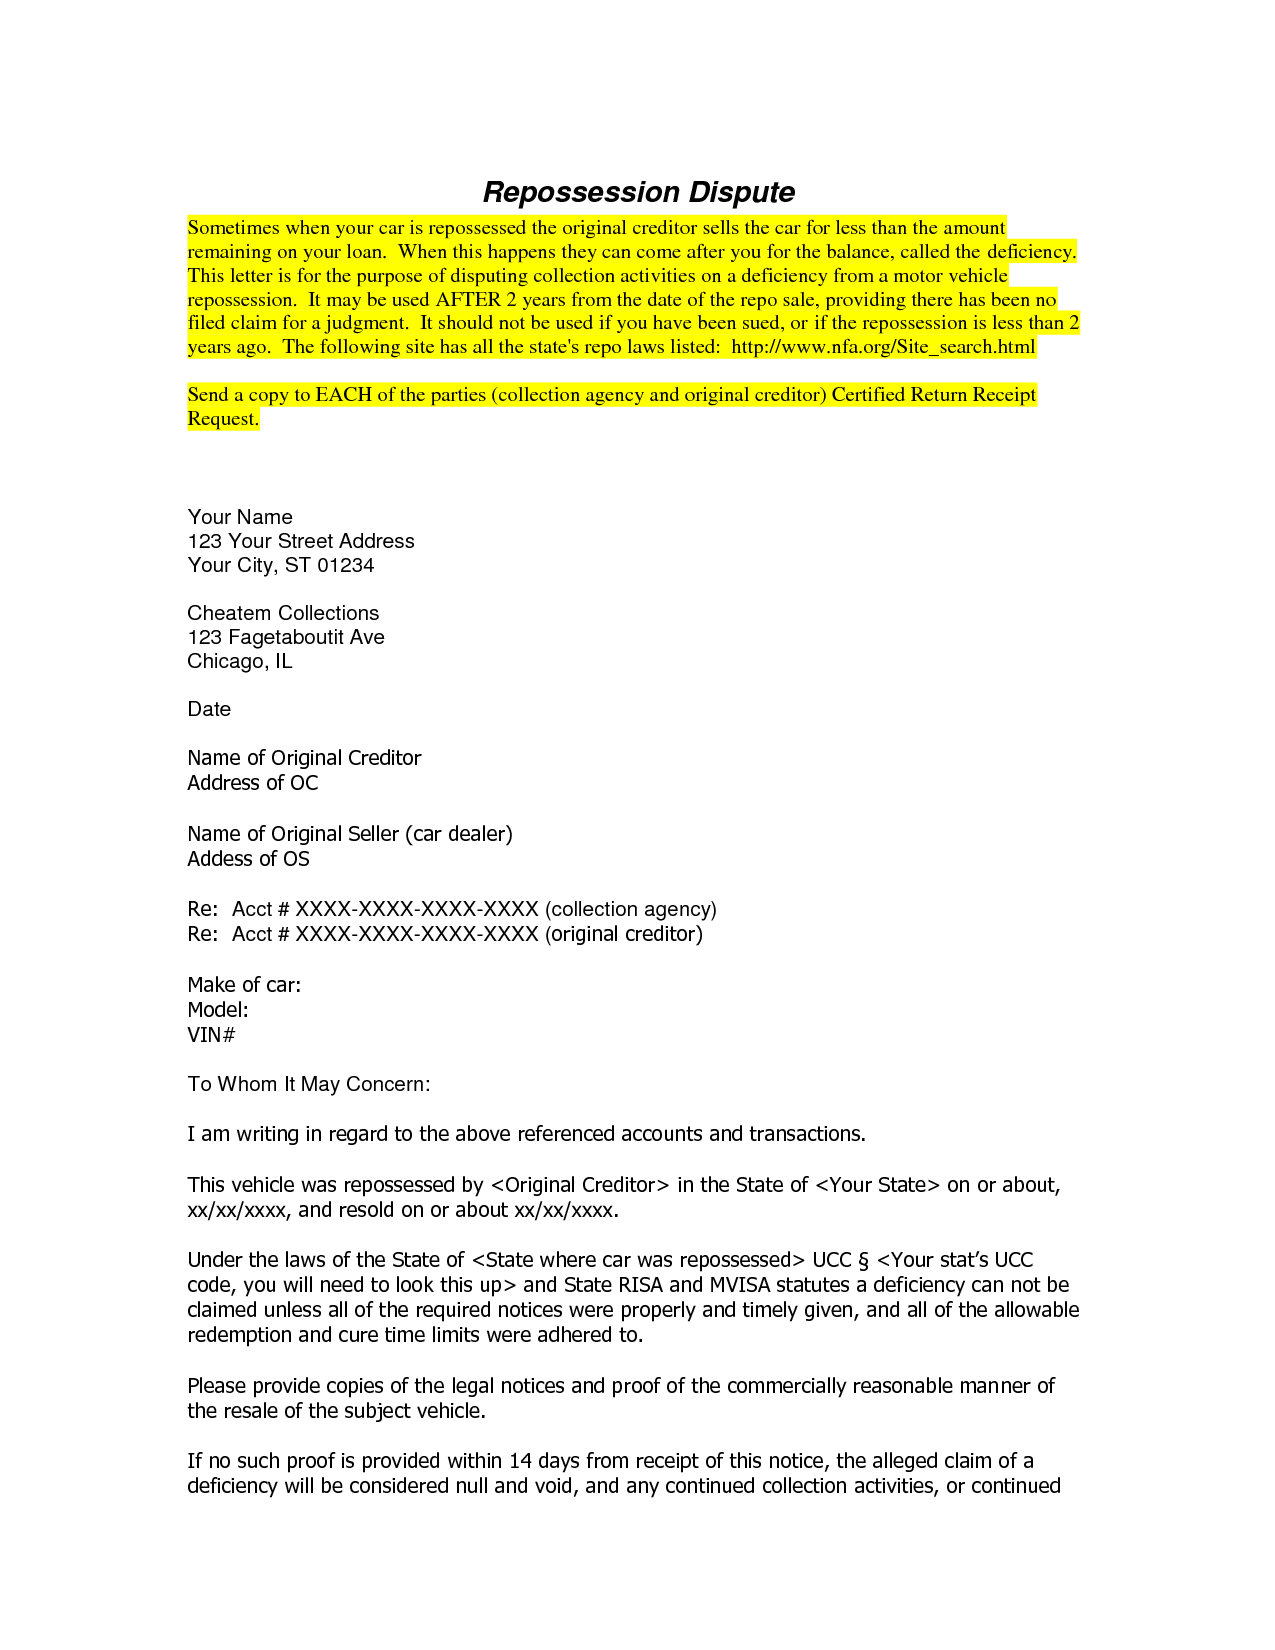 Car Repossession Dispute Letter Template - Free Cover Letter Templates Repossession Dispute Letter